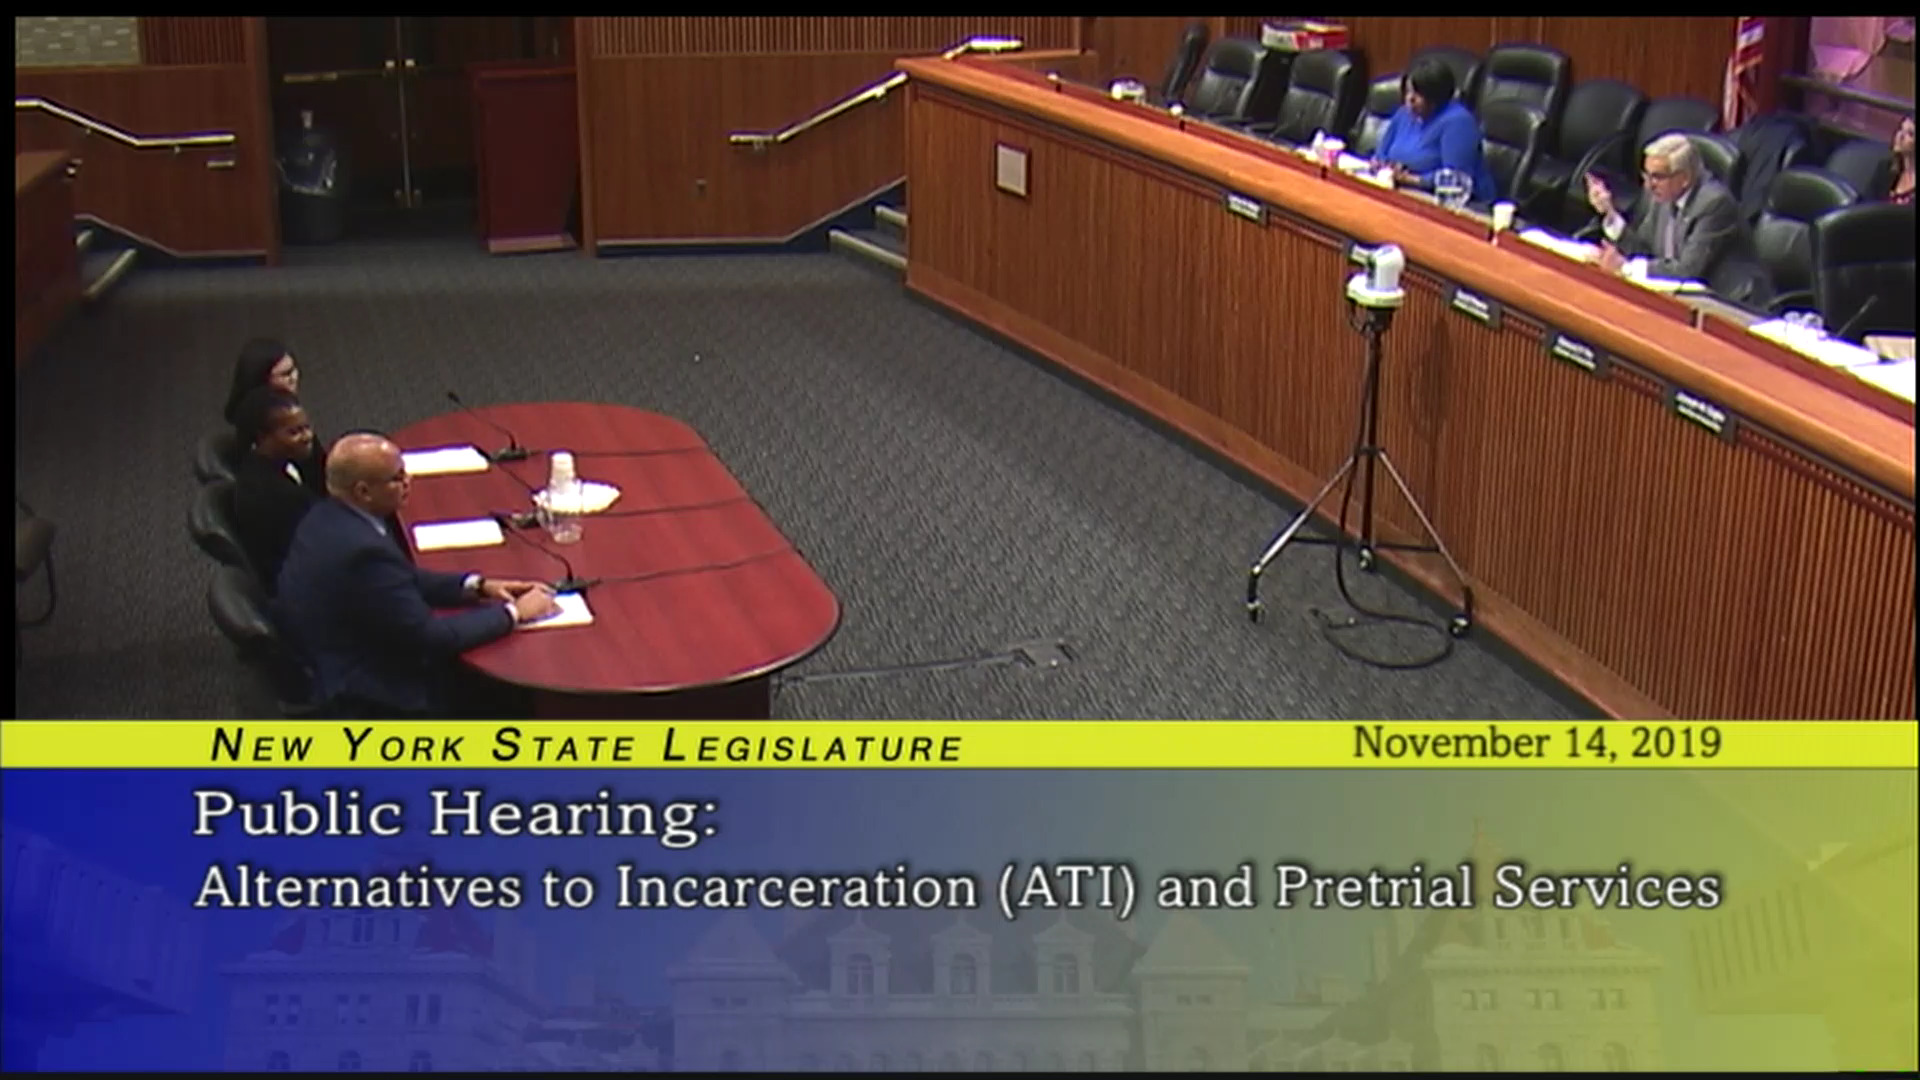 Public Hearing on Alternatives to Incarceration (ATI) and Pretrial Services (3)